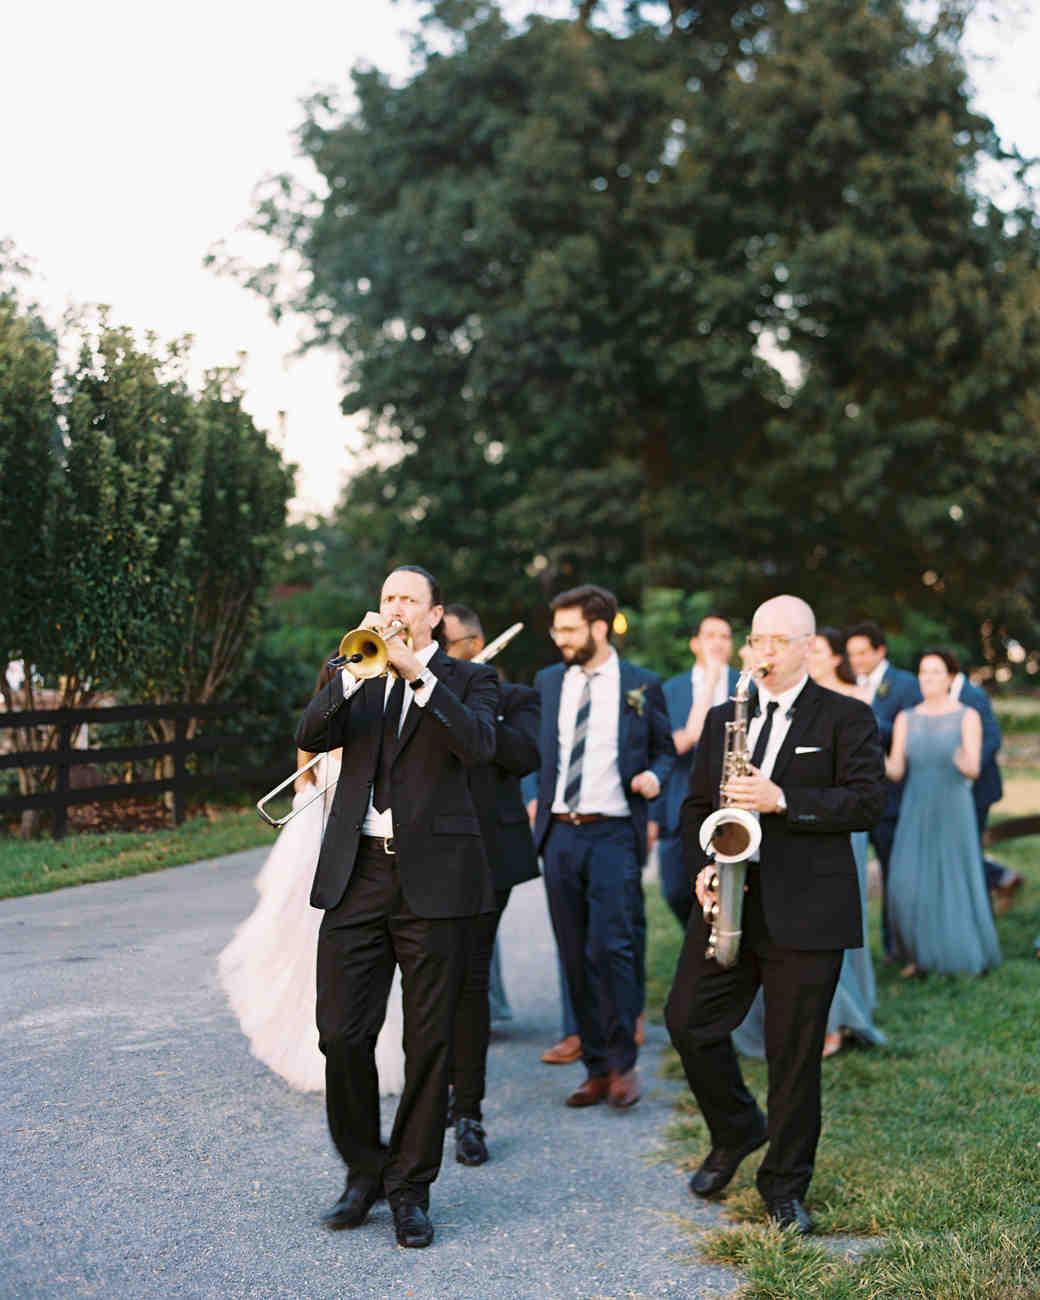 outdoor wedding band walk